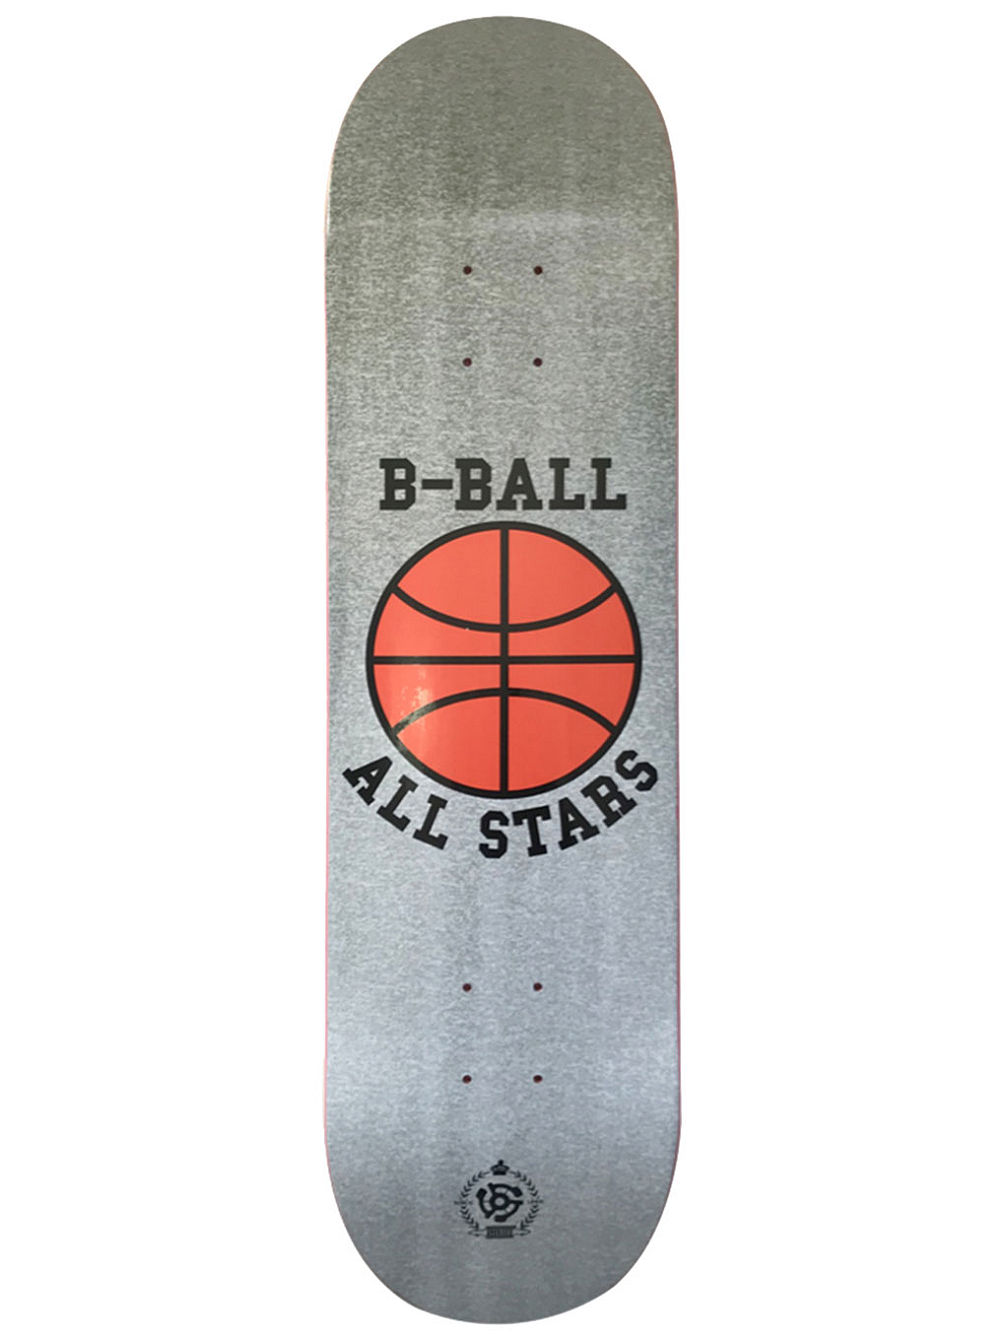 Heather B-Ball Allstars 8.25'' Skateboar